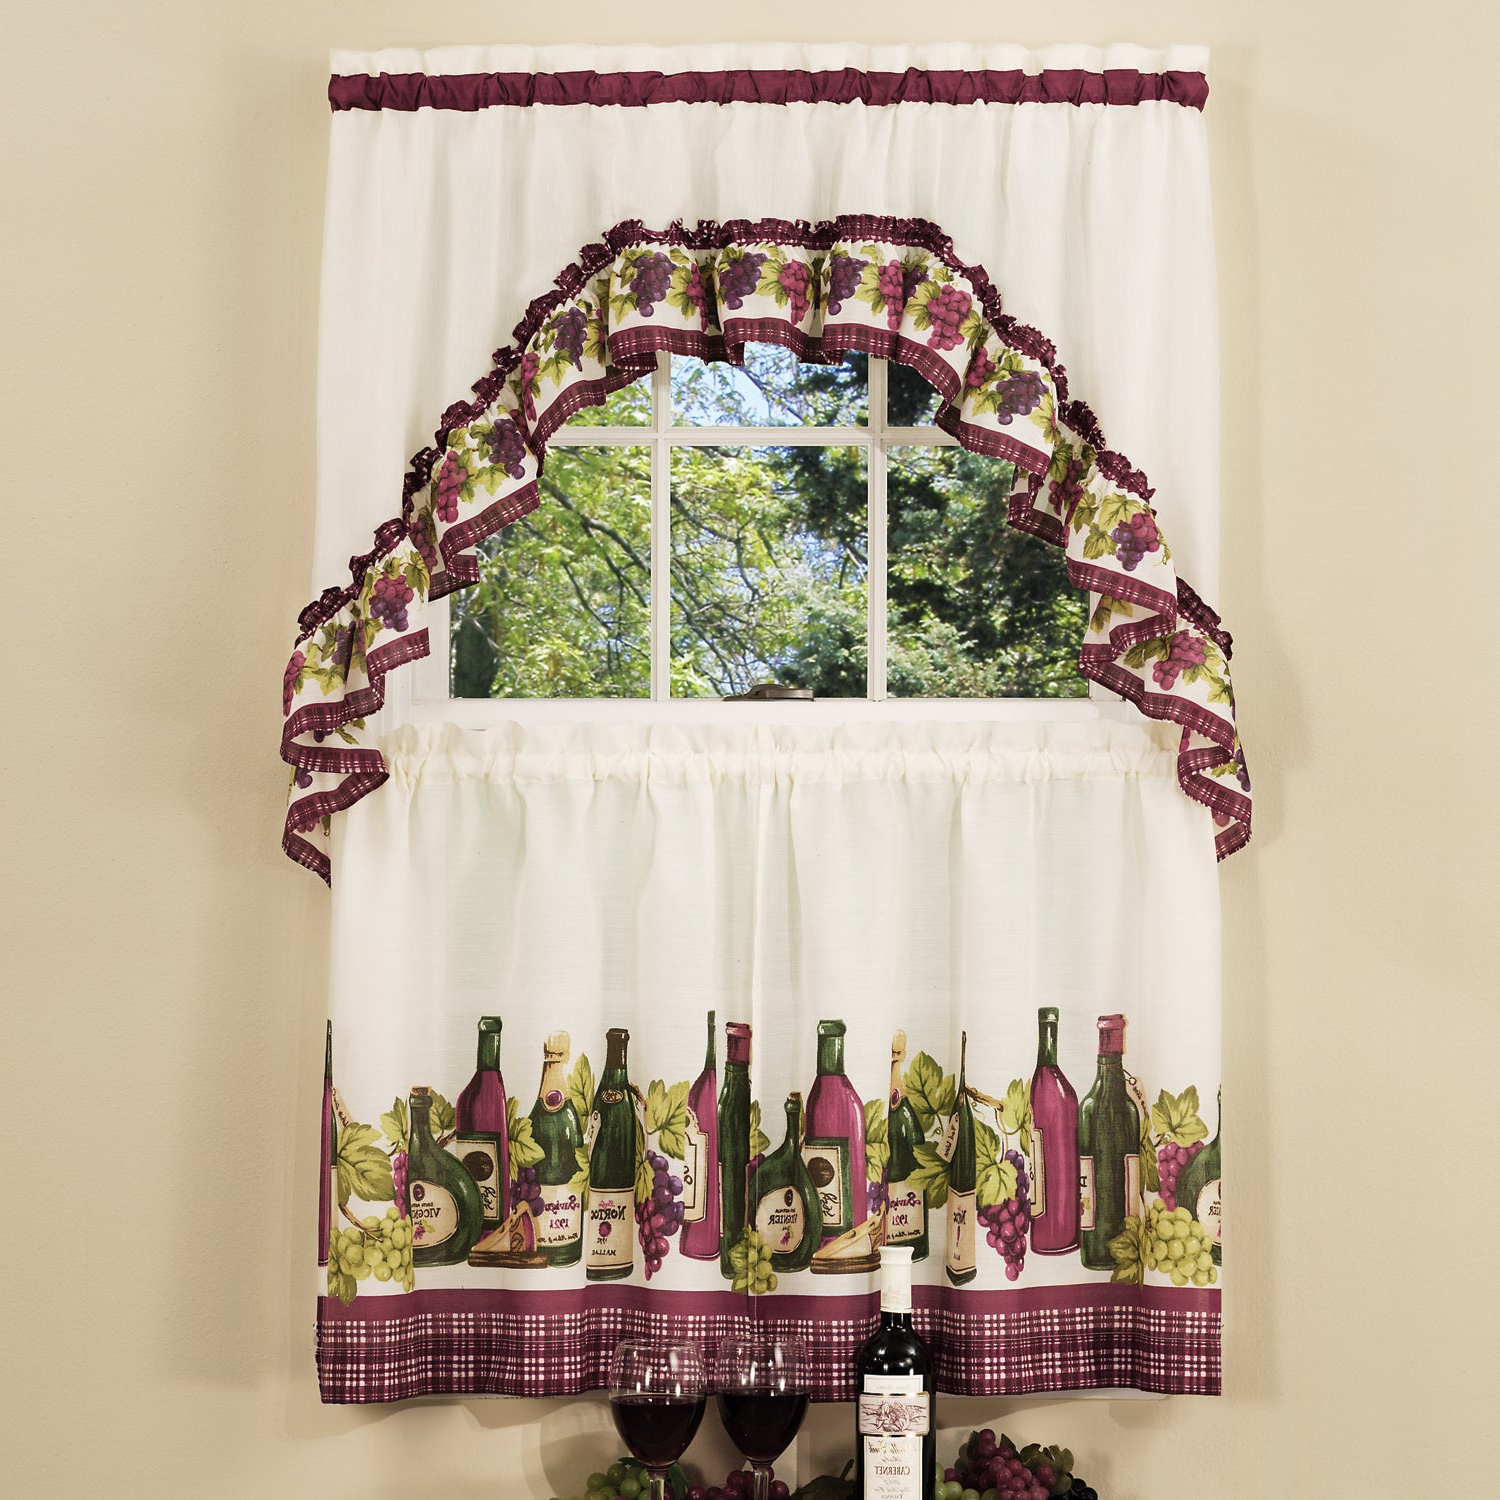 Traditional Two Piece Tailored Tier And Swag Window Curtains Set With Classic French Wine And Grapes Print – 36 Inch In Newest Chateau Wines Cottage Kitchen Curtain Tier And Valance Sets (Gallery 15 of 20)